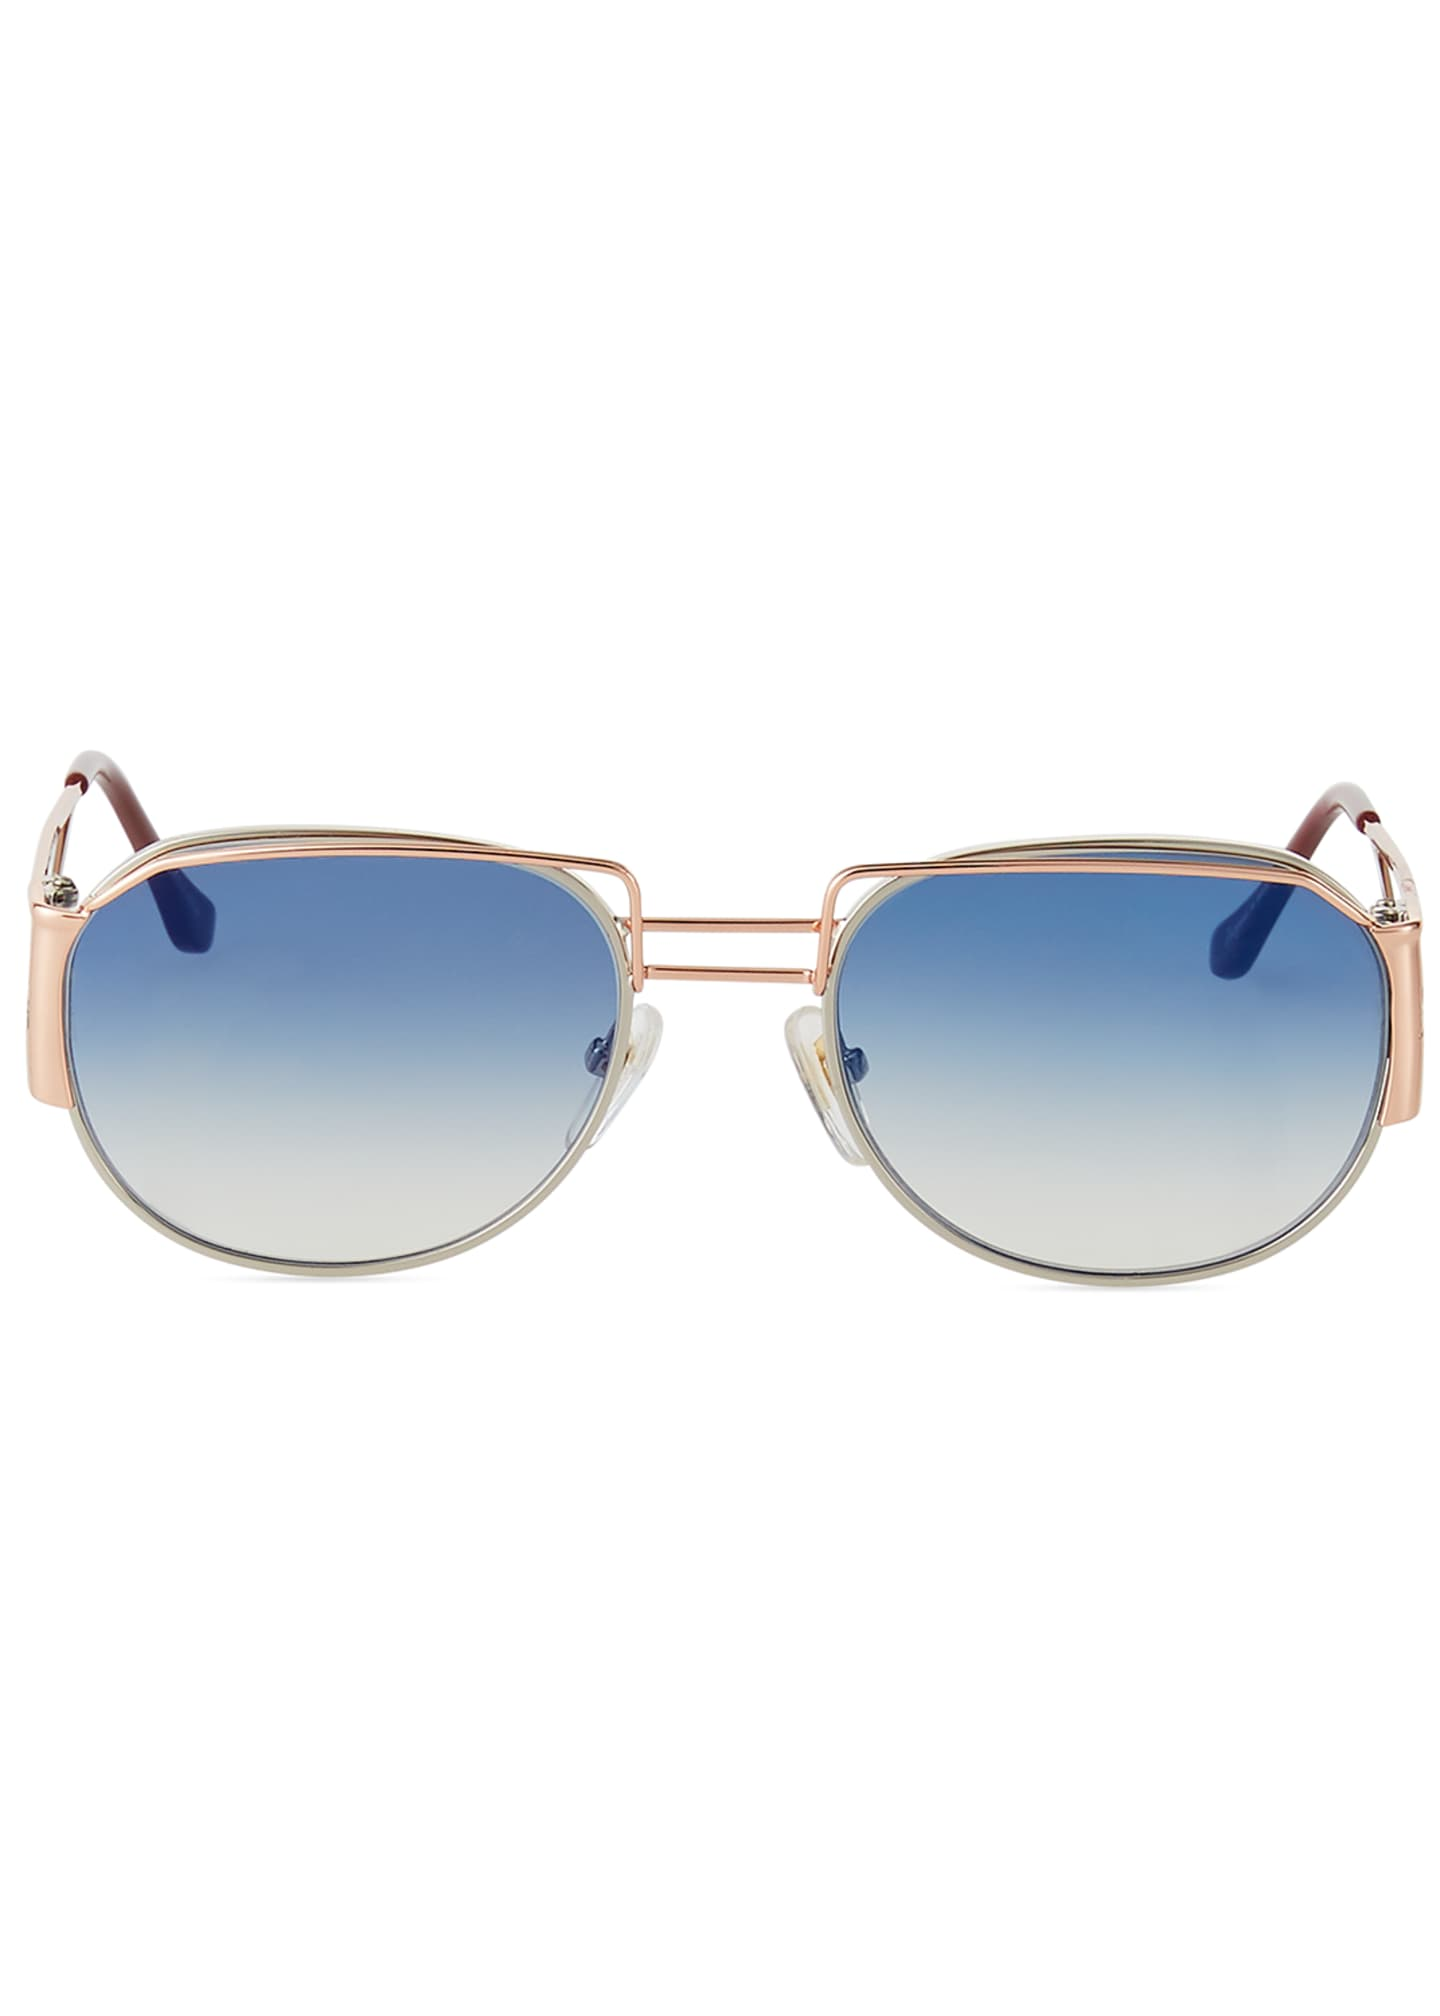 Image 2 of 3: Men's Gradient Geometric Metal Sunglasses